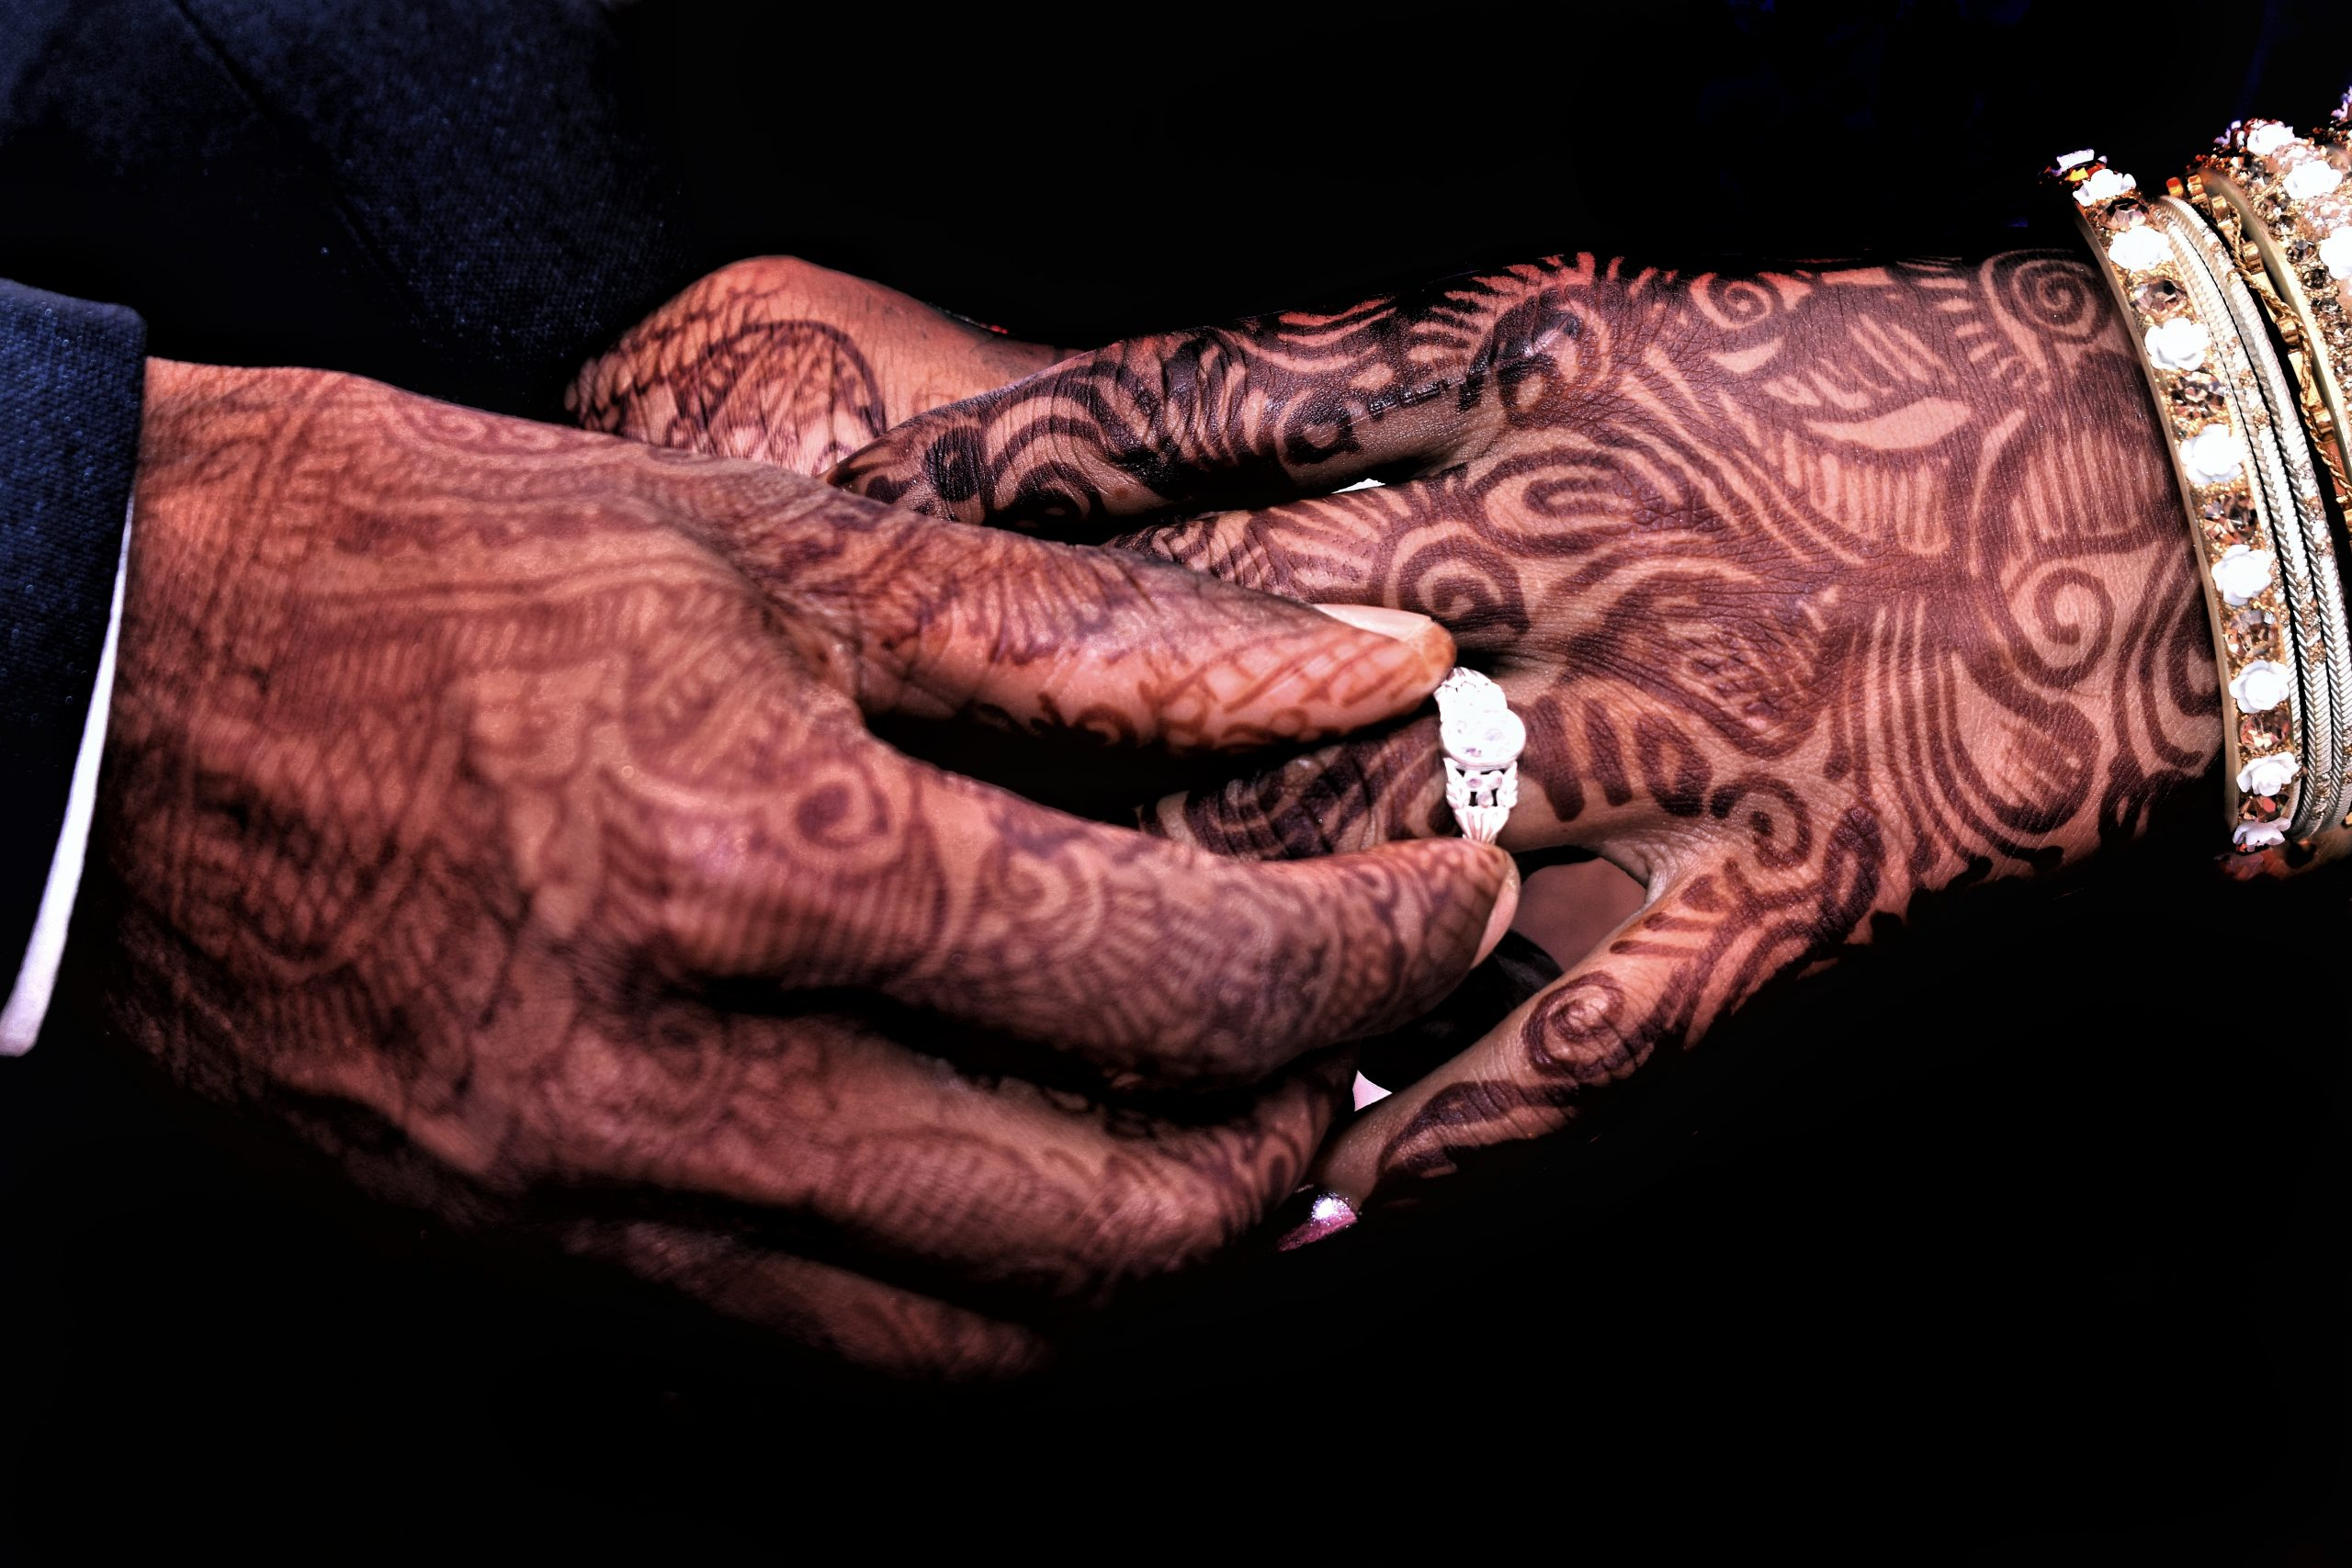 A wedding couple's hands